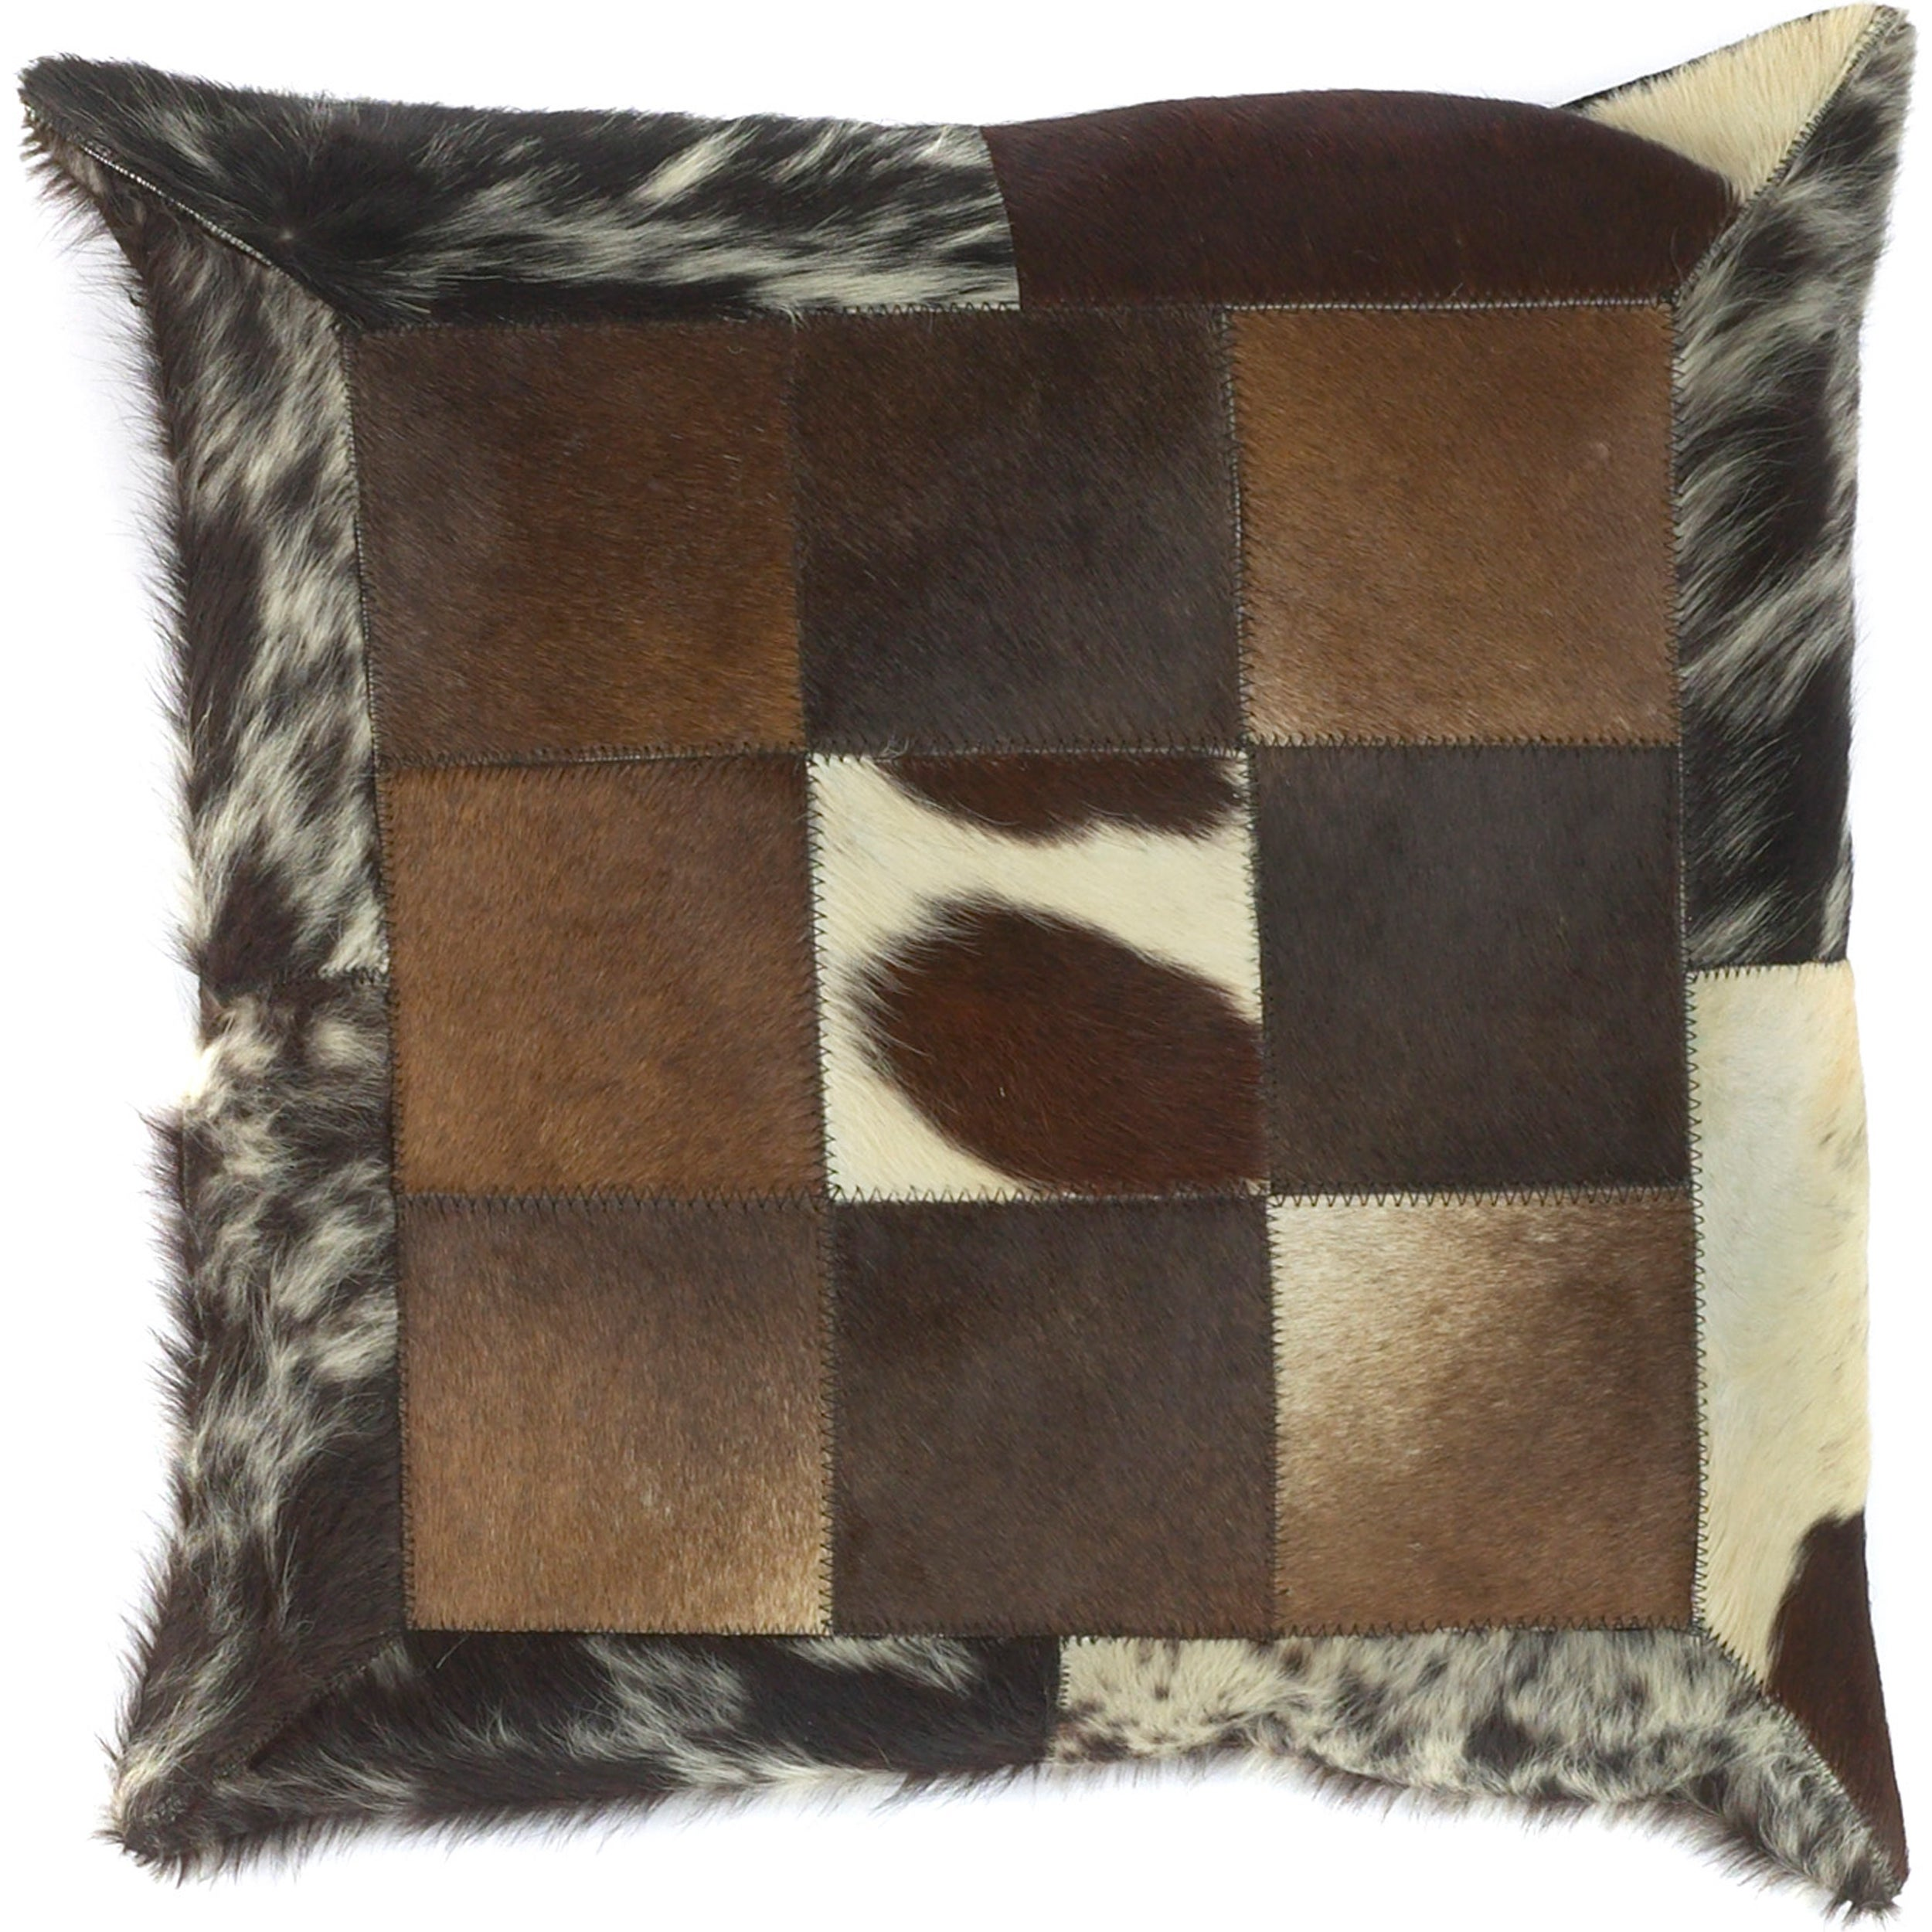 Throw Pillows Down Filled : Grafton Faux Fur Down Filled Decorative Pillow - Overstock Shopping - Great Deals on Throw Pillows